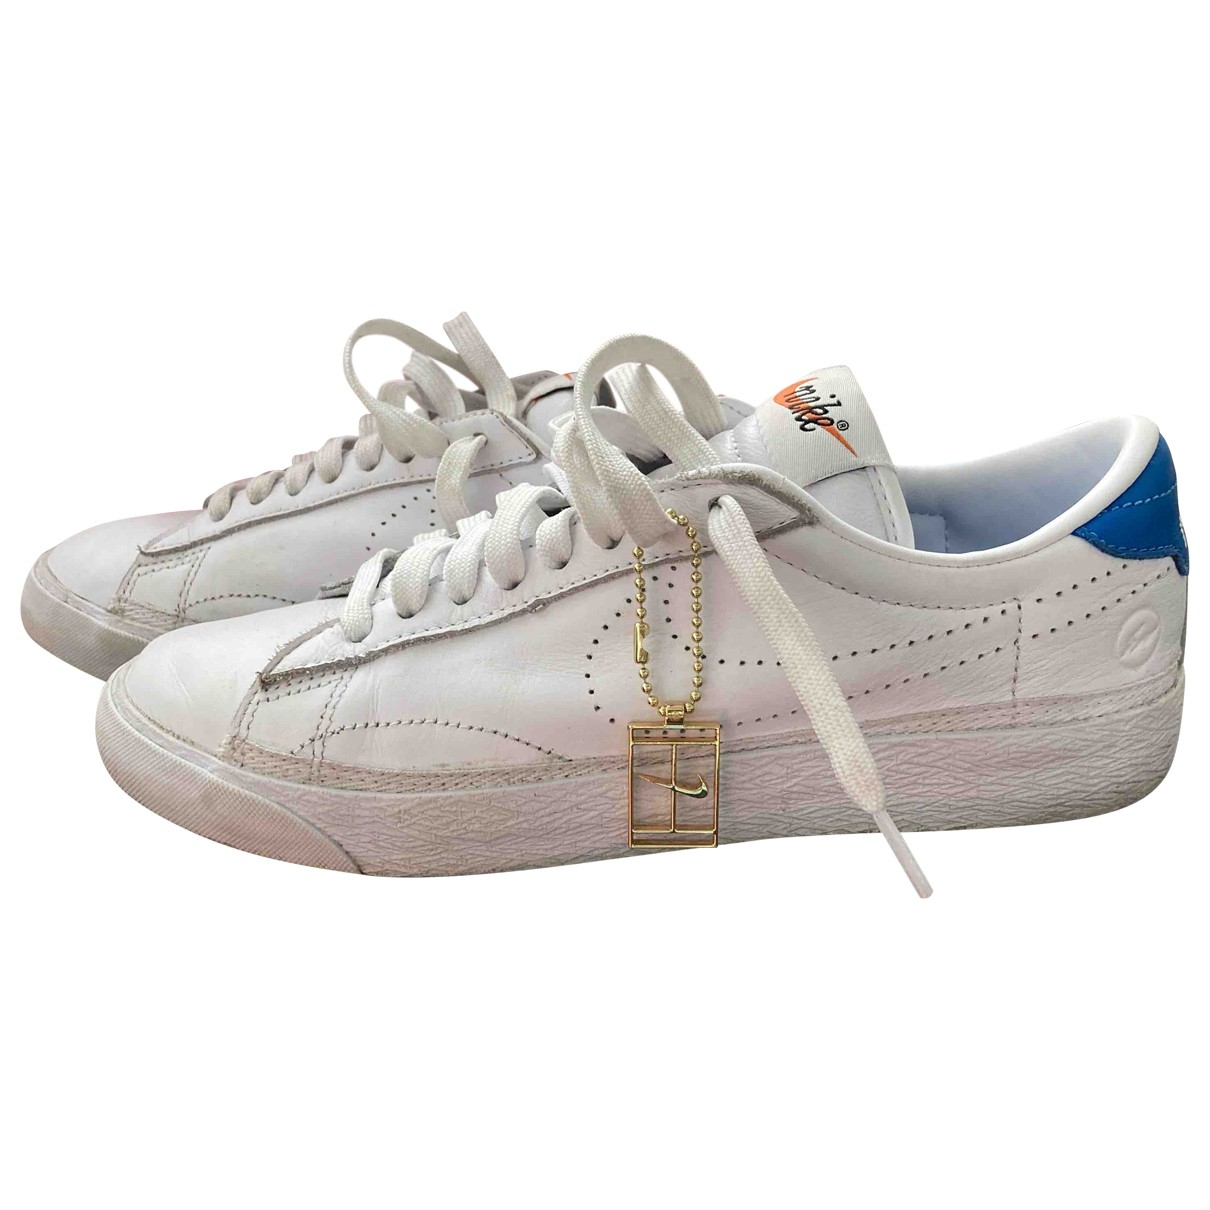 Nike N White Leather Trainers for Women 5.5 UK